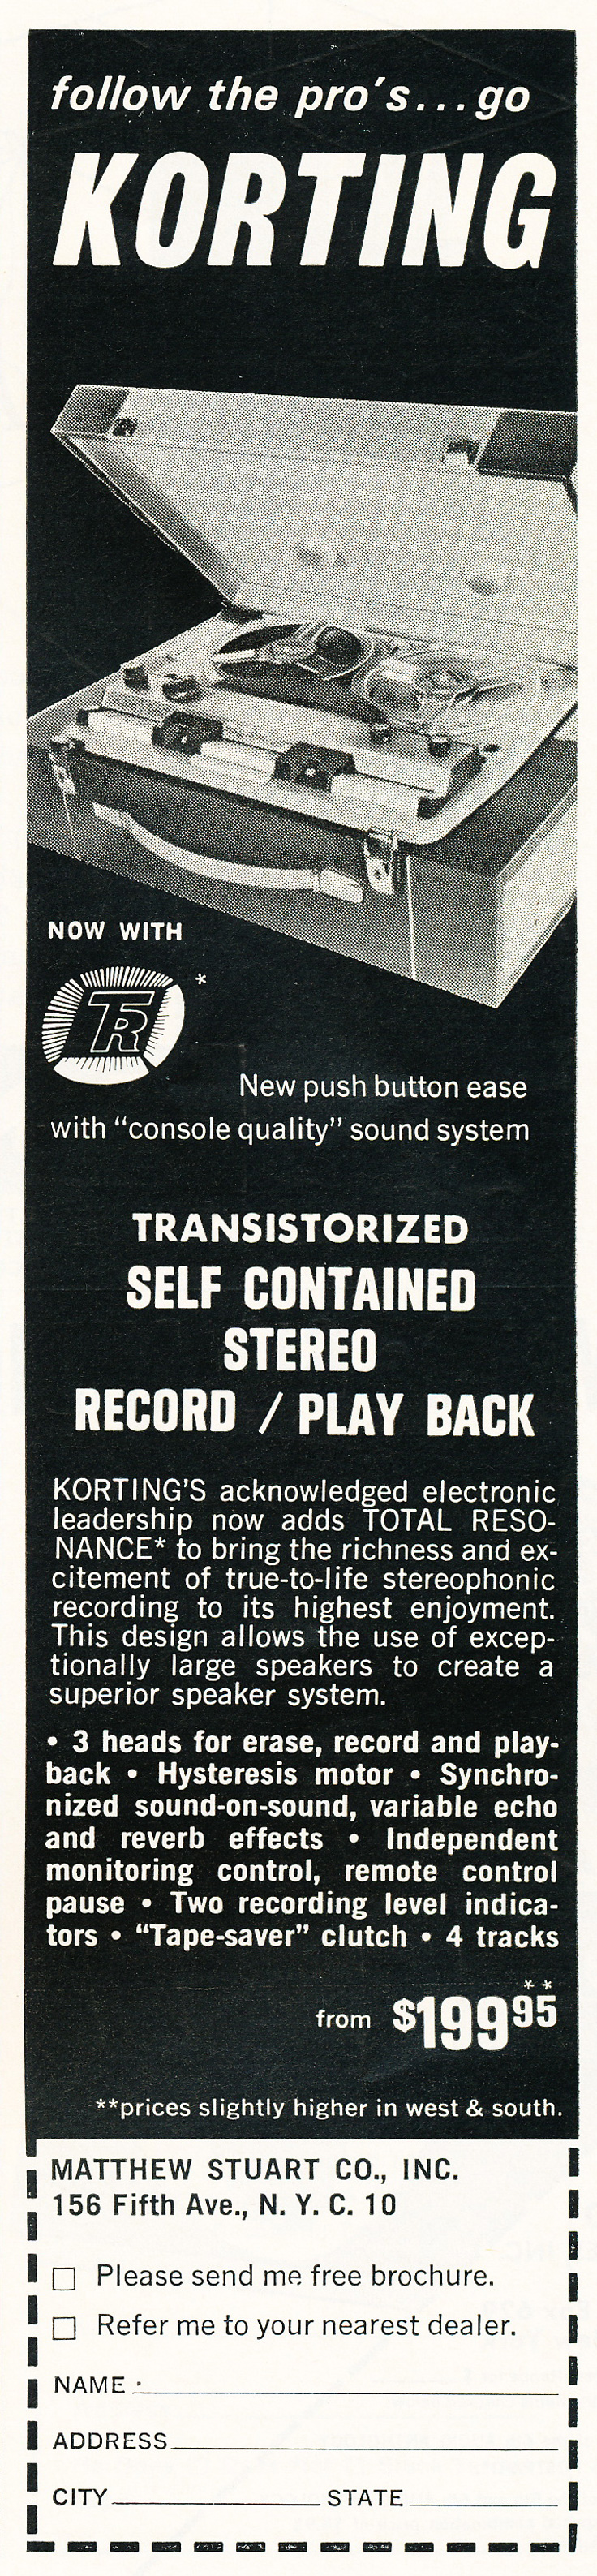 1963 ad for the Korting reel to reel tape recorder in Reel2ReelTexas.com's vintage recording collection